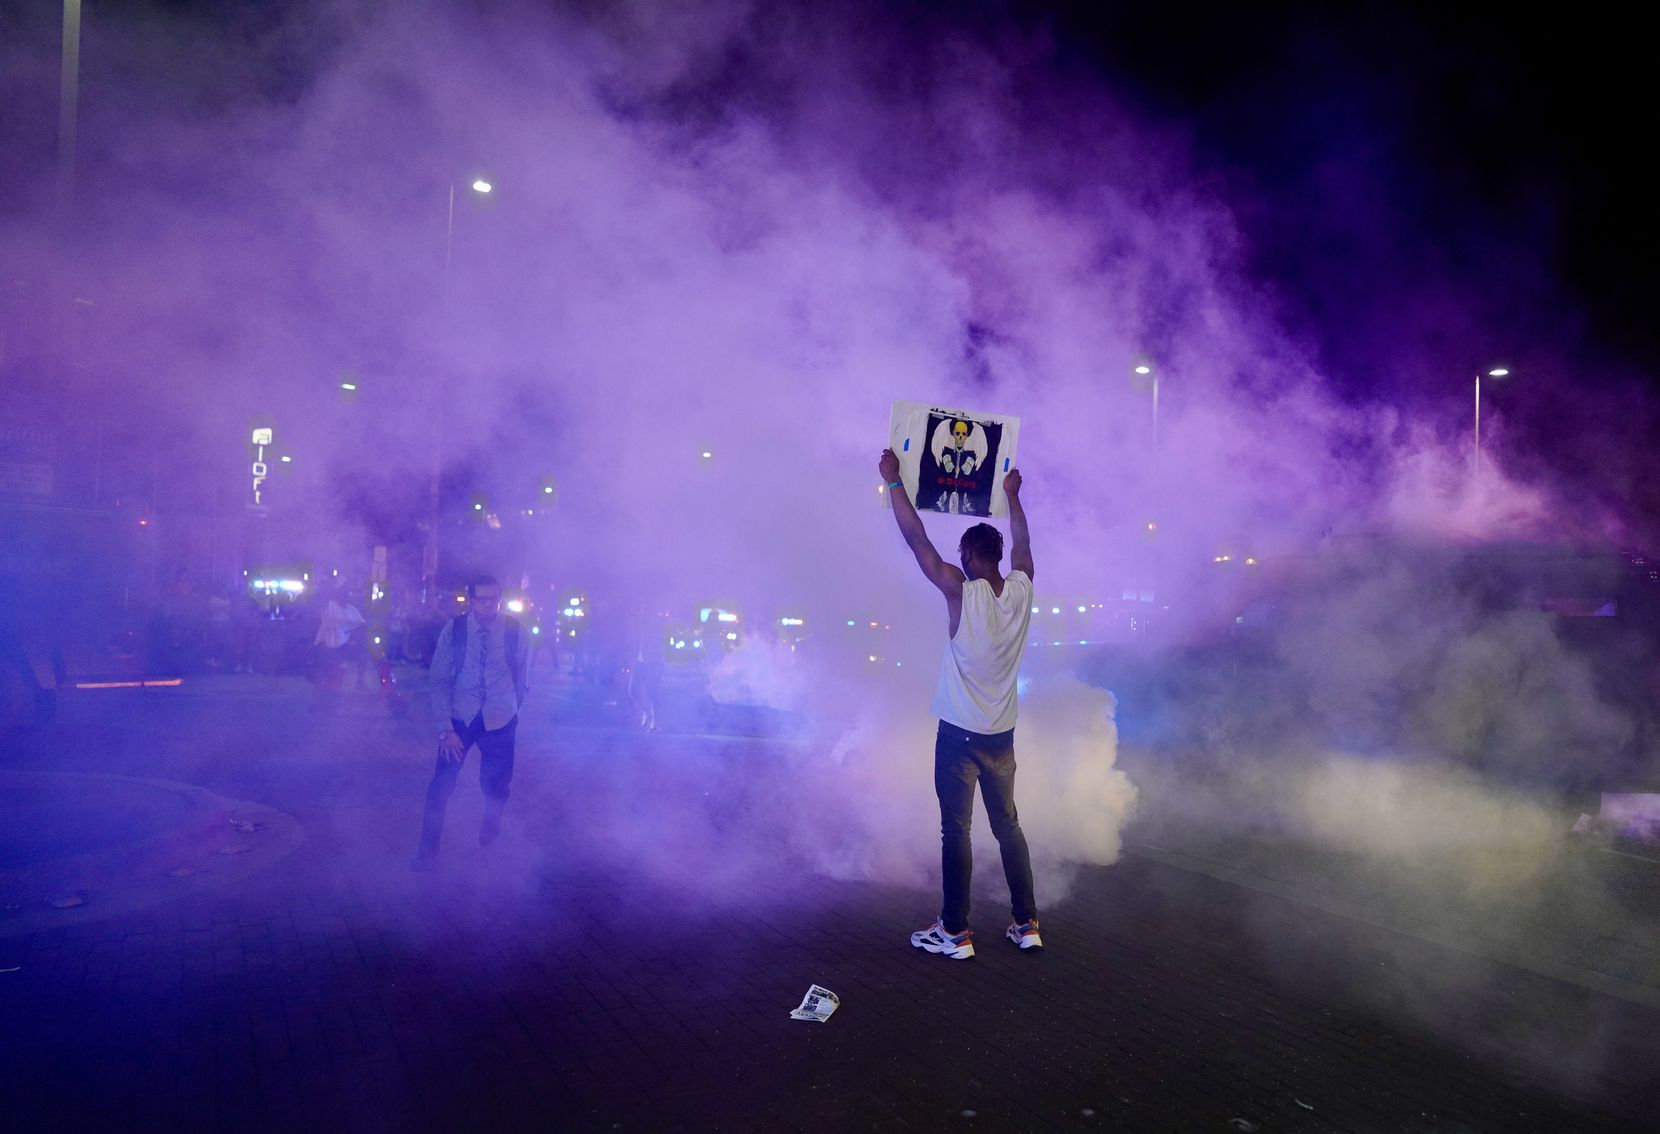 Protesters clash with Dallas police at Griffin and Young on Friday, May 29, 2020, in Dallas. The protest was organized by Next Generation Action Network in response to the in-custody death of George Floyd in Minneapolis.